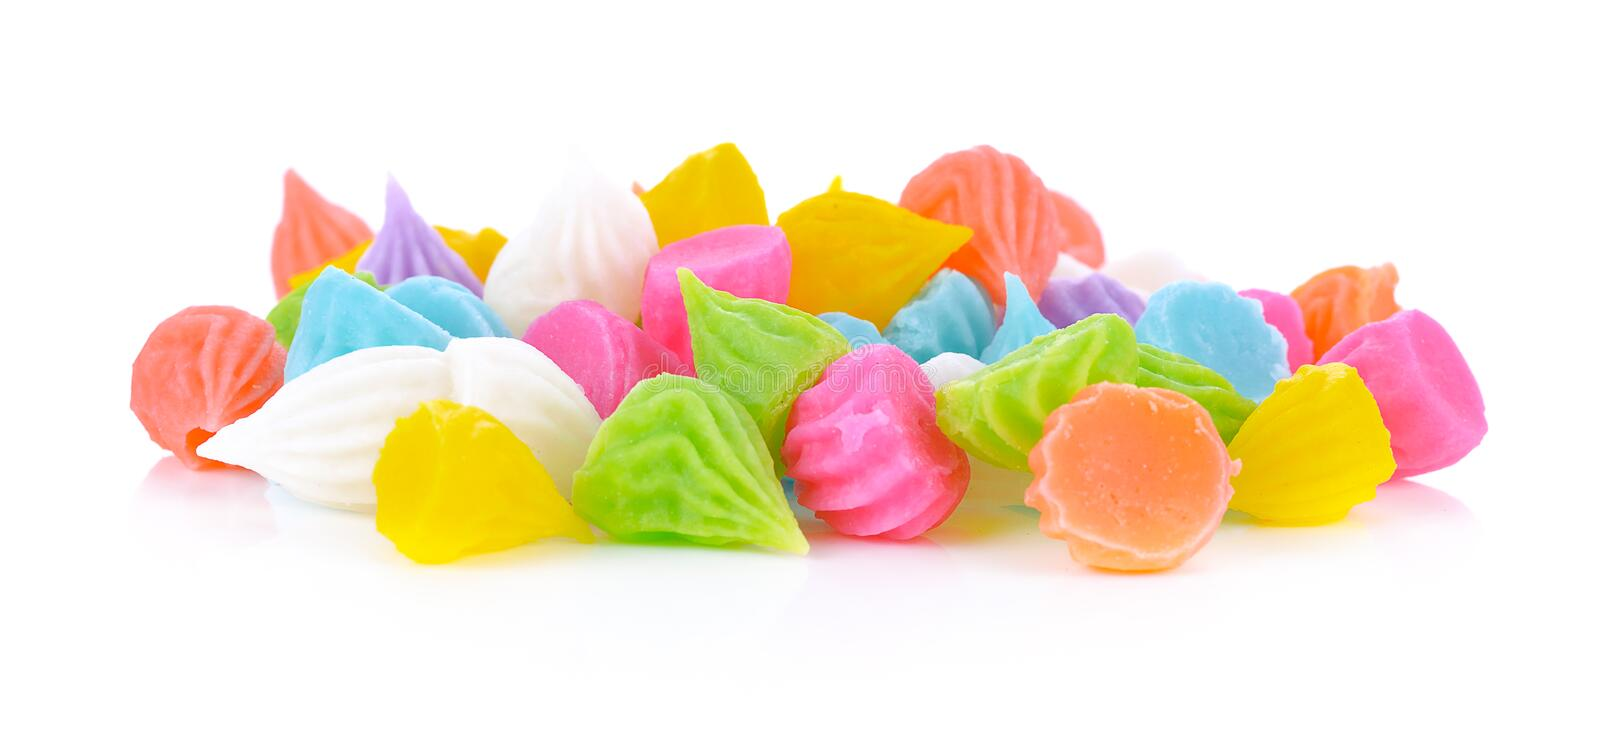 Candy Thailand Aalaw colorful in white background. Candy Thailand Aalaw colorful natural fresh colors isolated on a white  background stock photo